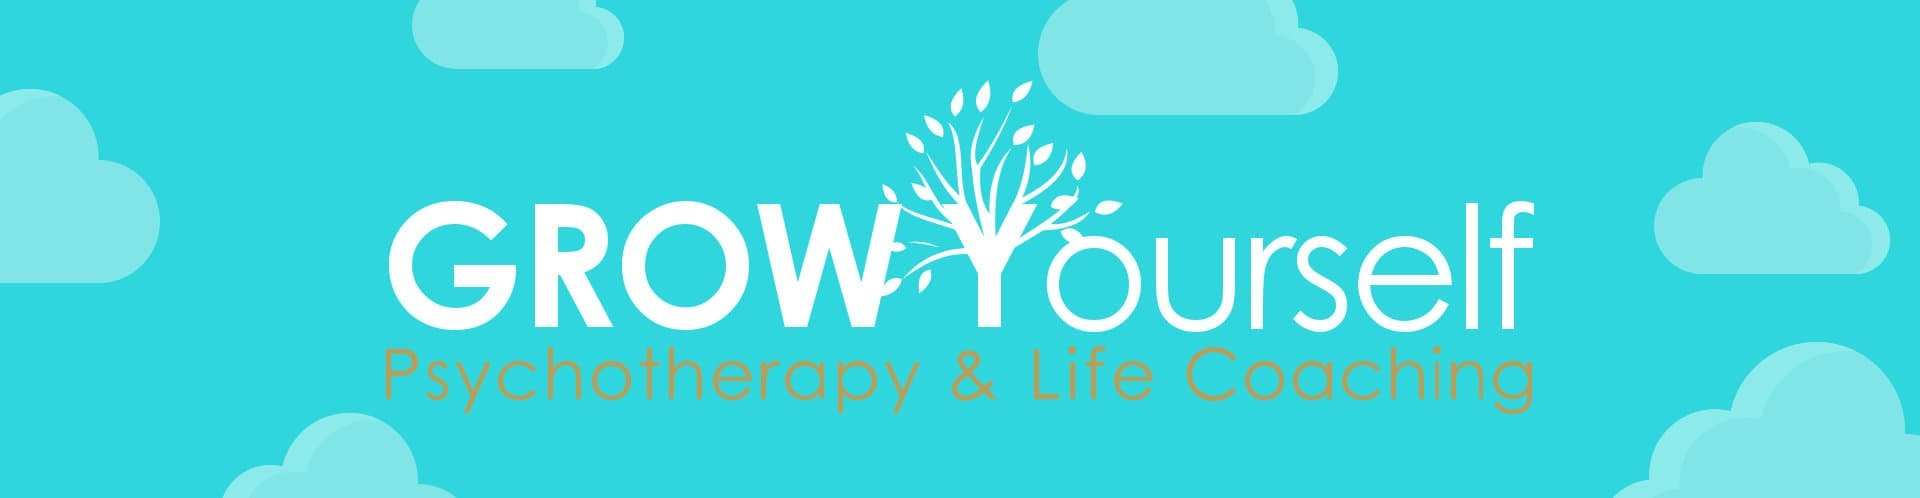 Grow Yourself Psychotherapy & Life Coaching